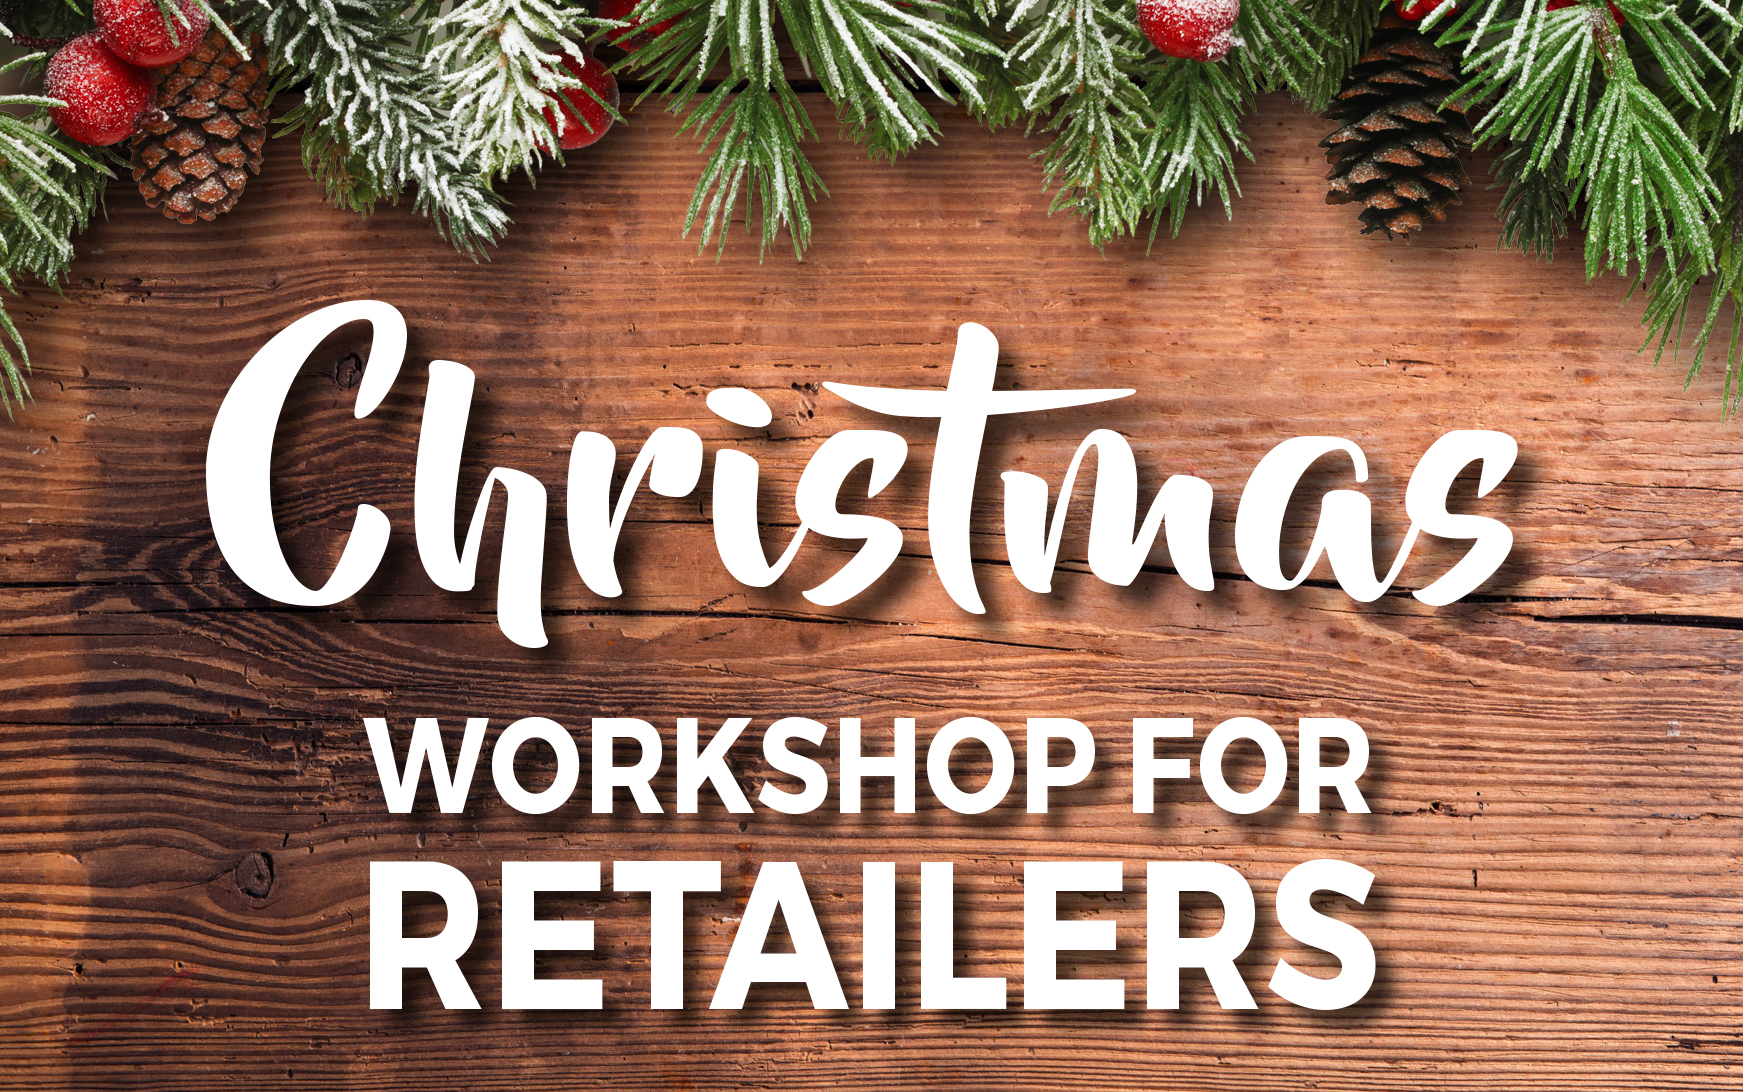 Christmas Workshop for Retailers small.jpg